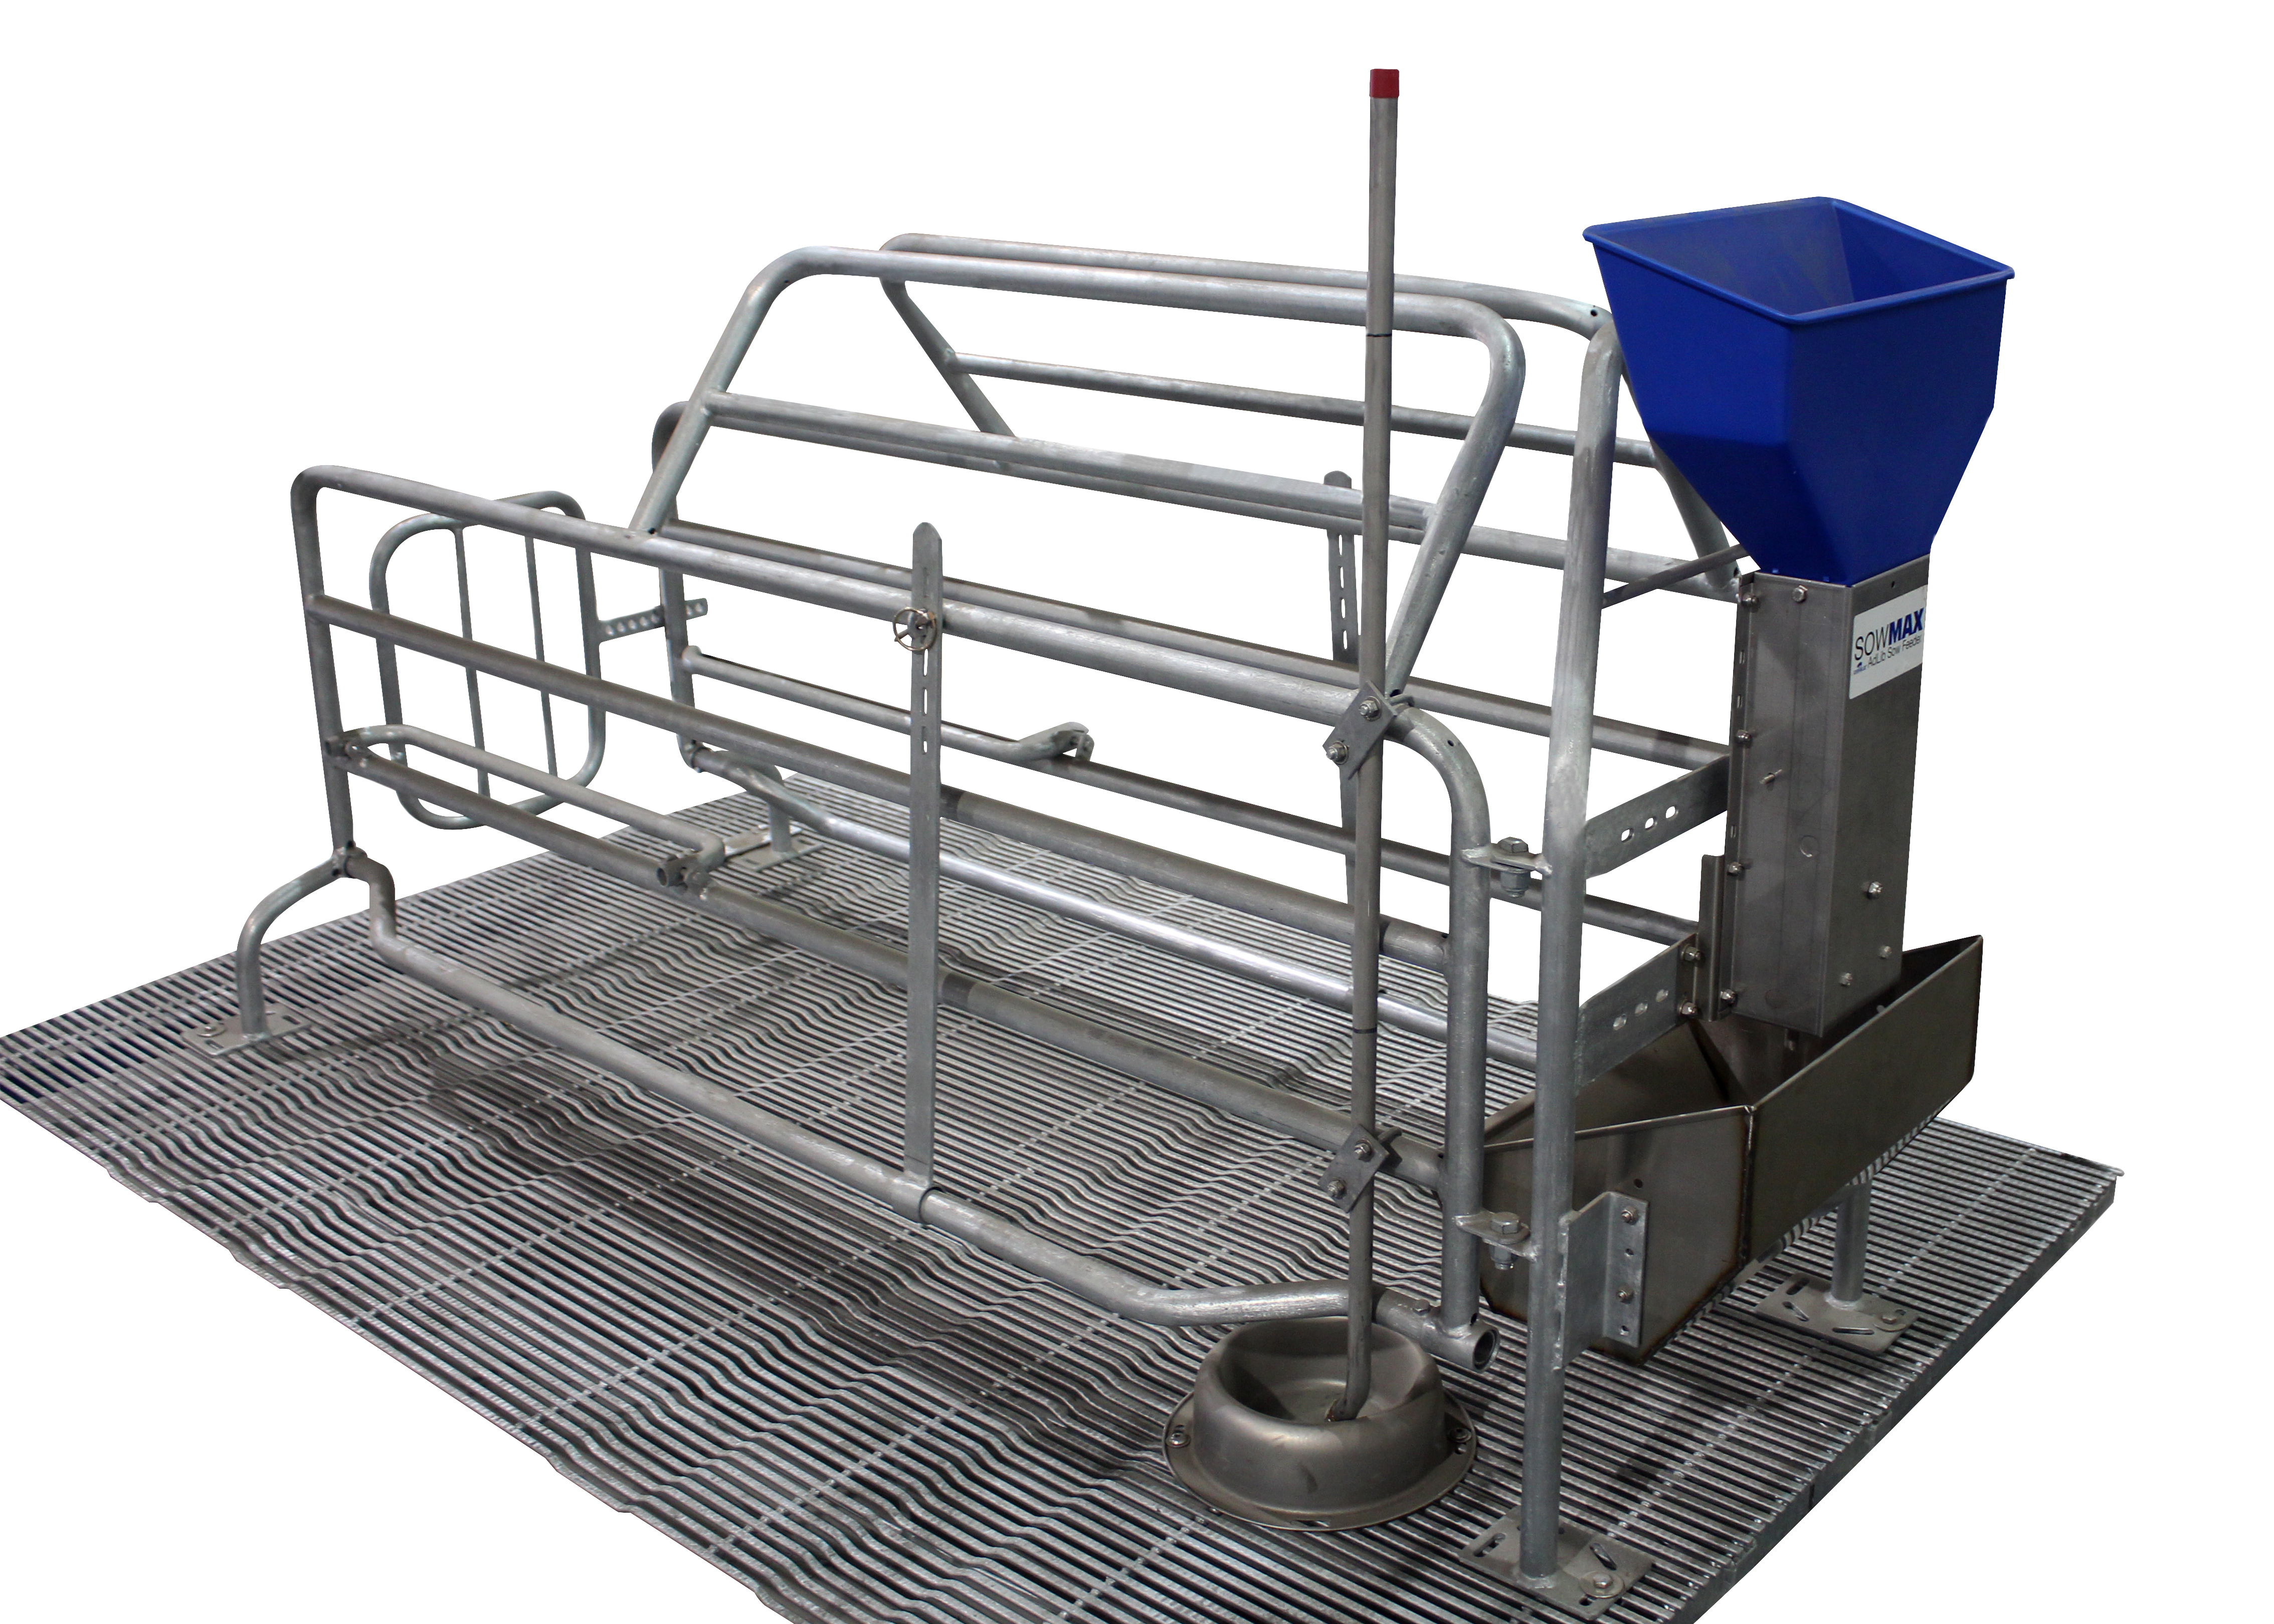 Hog Slat International farrowing crates are designed to comply with applicable animal welfare standards and built to meet the production needs of pork producers outside the United States.